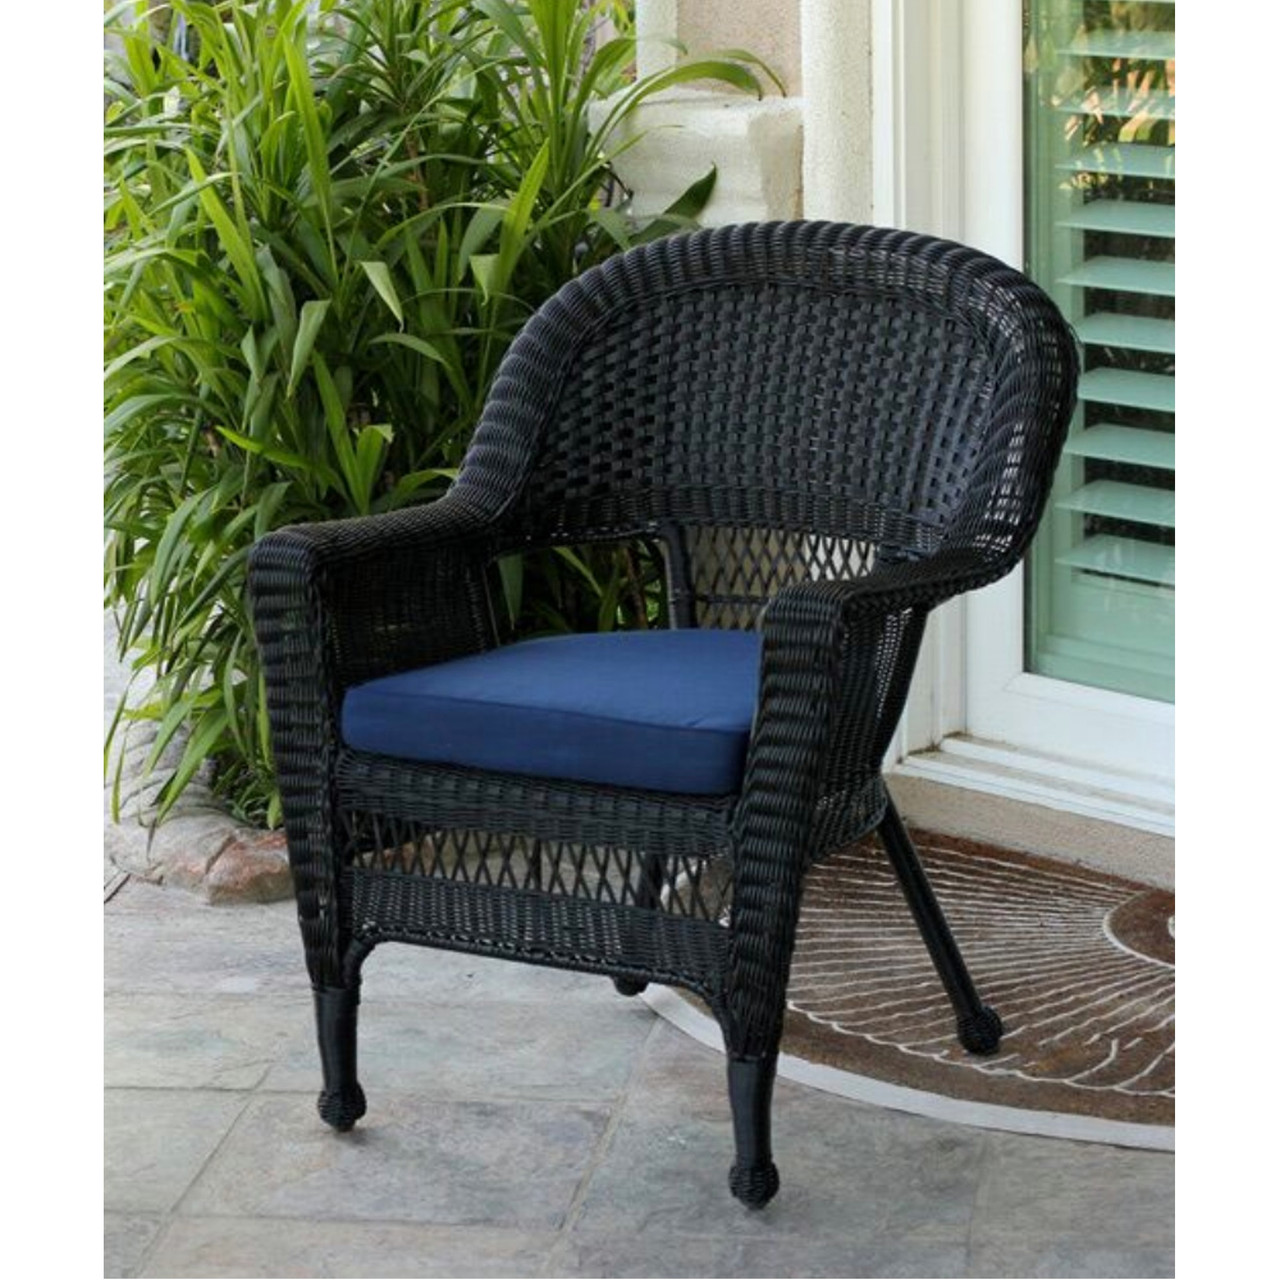 comfortable wicker chairs chair cover aliexpress 36 black resin outdoor patio garden with navy blue cc living